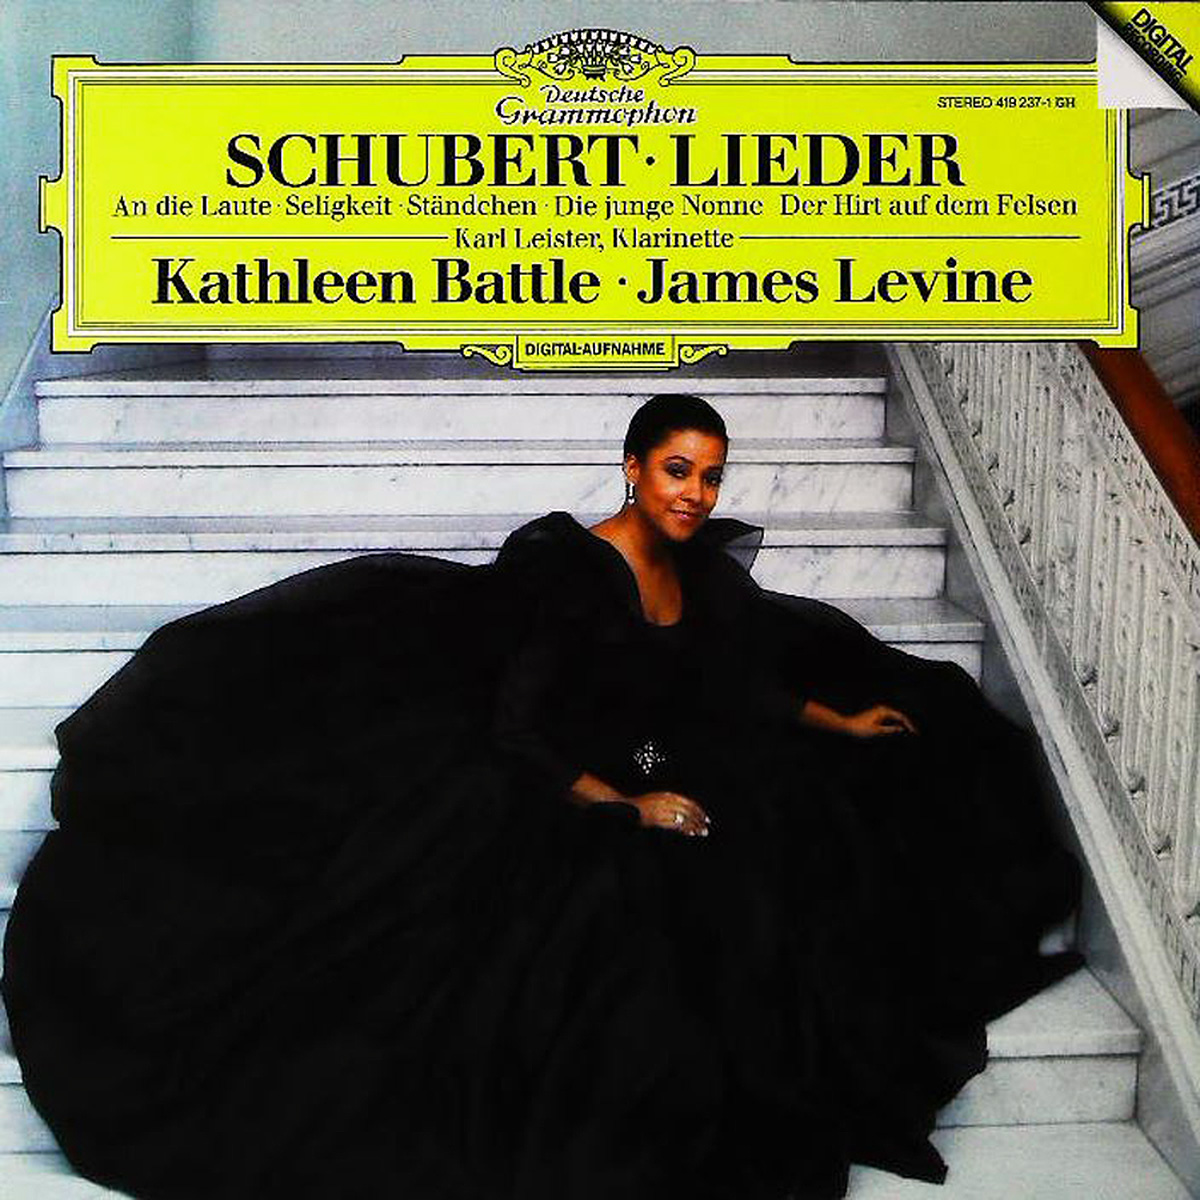 DGG 419 237 Schubert Lieder Battle Levine